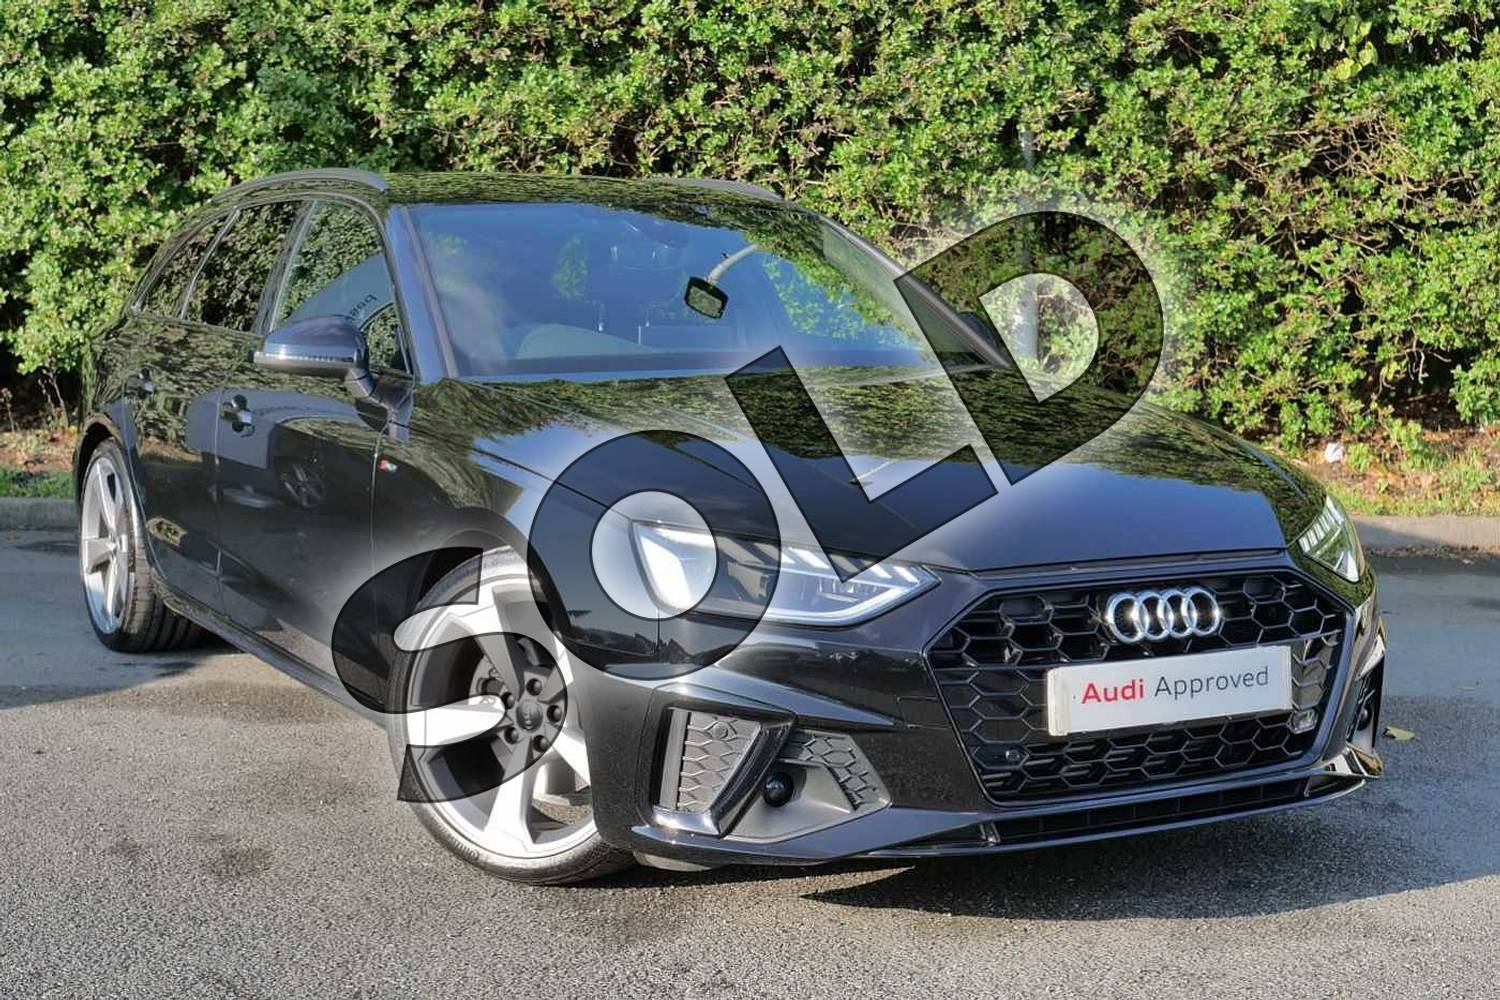 2020 Audi A4 Avant 35 TFSI Black Edition 5dr S Tronic in Myth Black Metallic at Worcester Audi